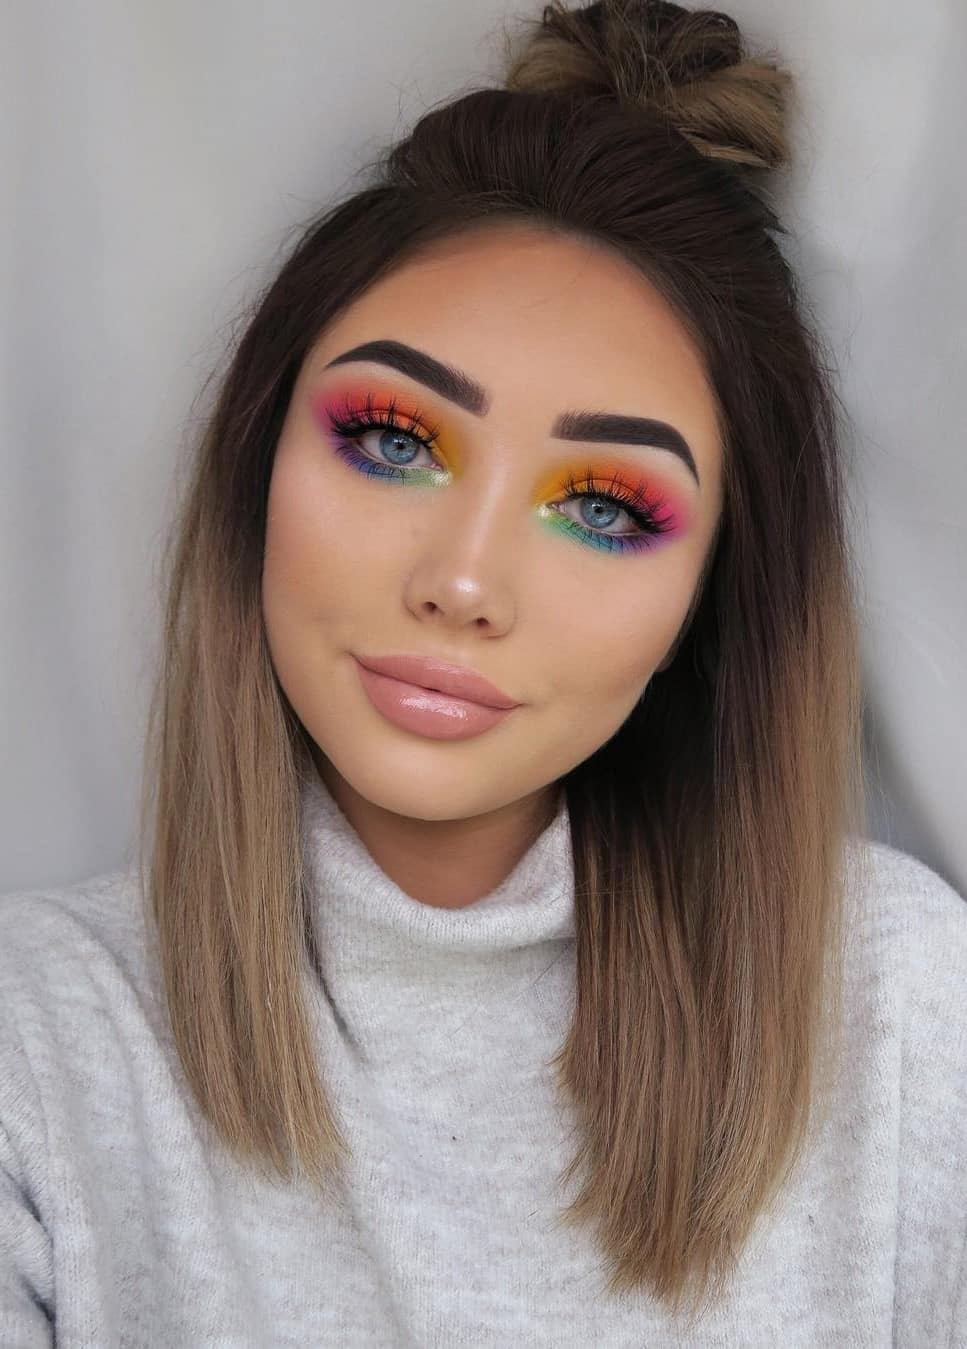 46 Amazing Makeup Looks To Try